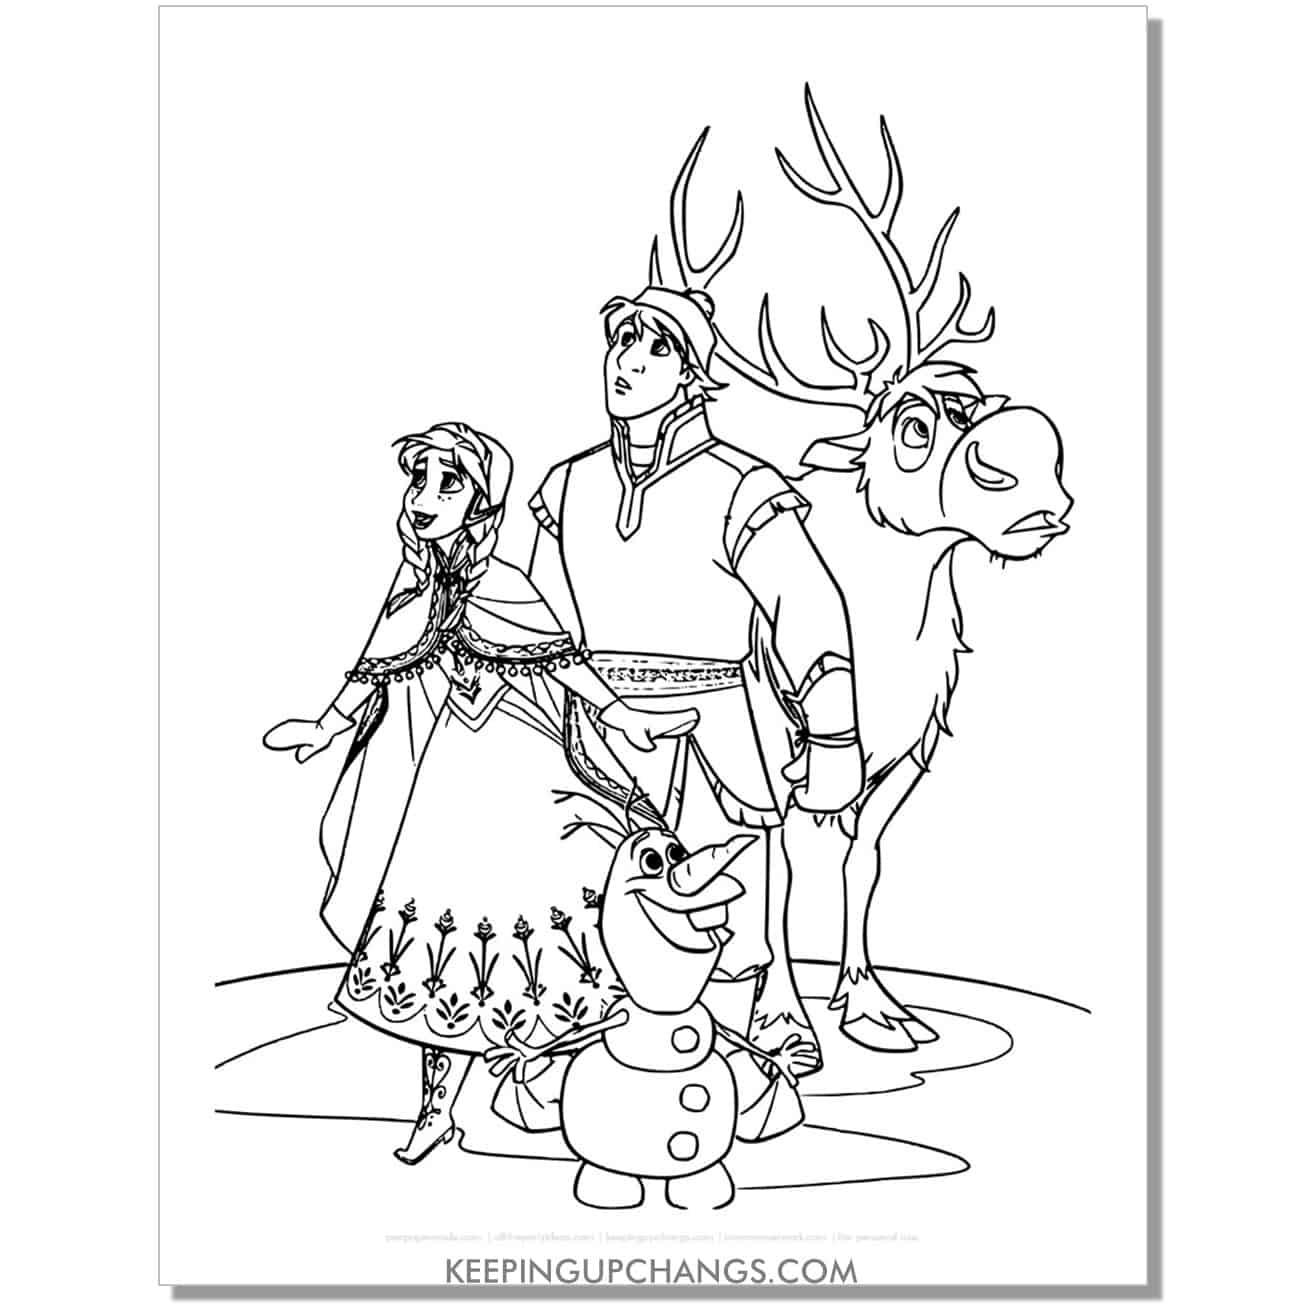 free frozen anna, kristoff, sven, olaf coloring page.